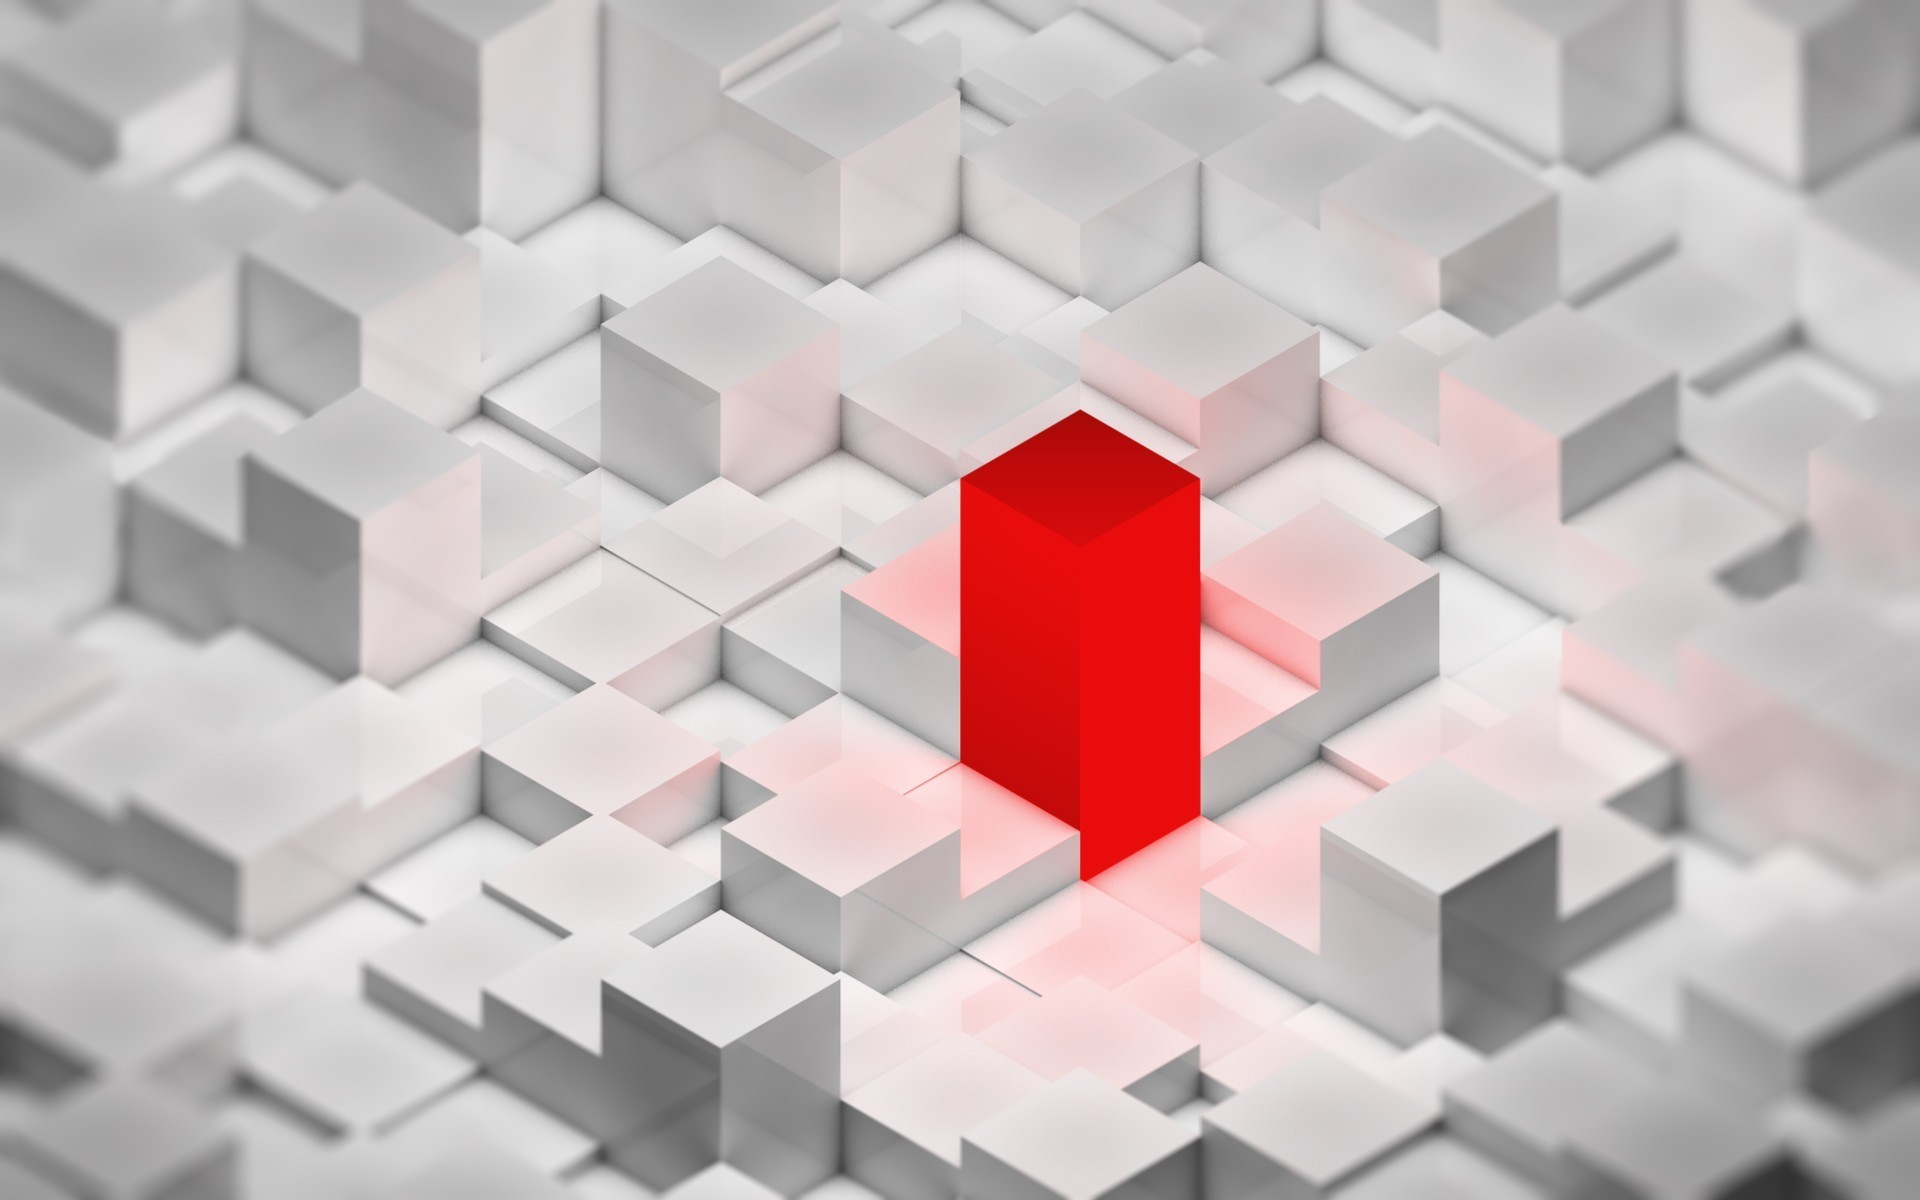 red cubes HD Wallpaper